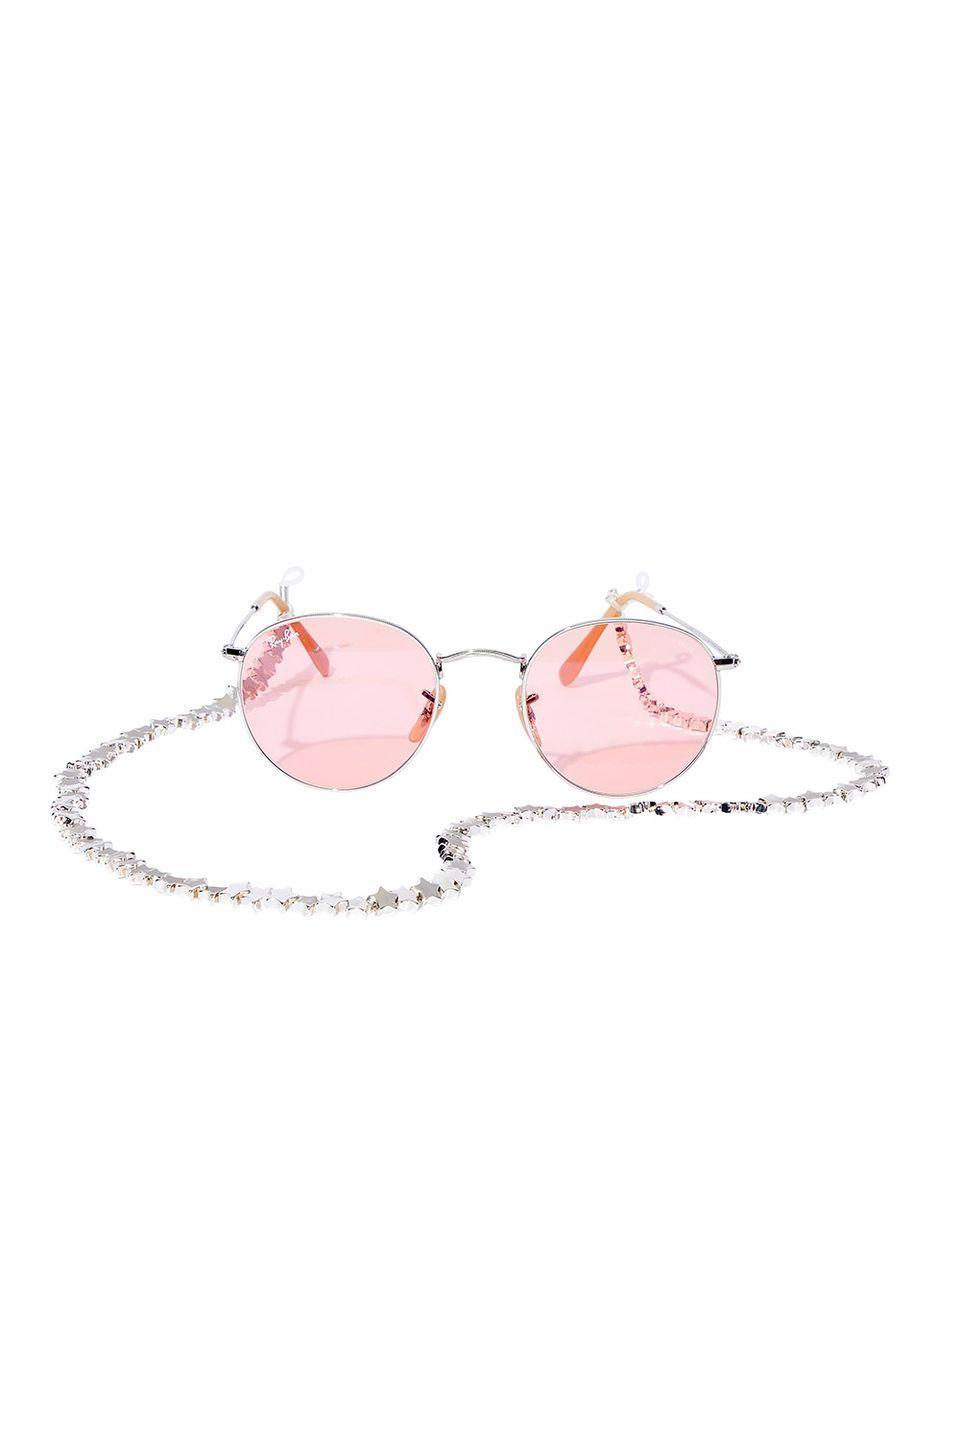 """<p>The combo of your dreams for a late summer concert or just hanging out after school. </p><p>Ray-Ban sunglasses, $183, <a href=""""https://www.ray-ban.com/usa"""" rel=""""nofollow noopener"""" target=""""_blank"""" data-ylk=""""slk:ray-ban.com"""" class=""""link rapid-noclick-resp"""">ray-ban.com</a></p><p>Tuleste sunglasses chain, $50, <a href=""""https://tuleste.com/"""" rel=""""nofollow noopener"""" target=""""_blank"""" data-ylk=""""slk:tuleste.com"""" class=""""link rapid-noclick-resp"""">tuleste.com</a></p>"""